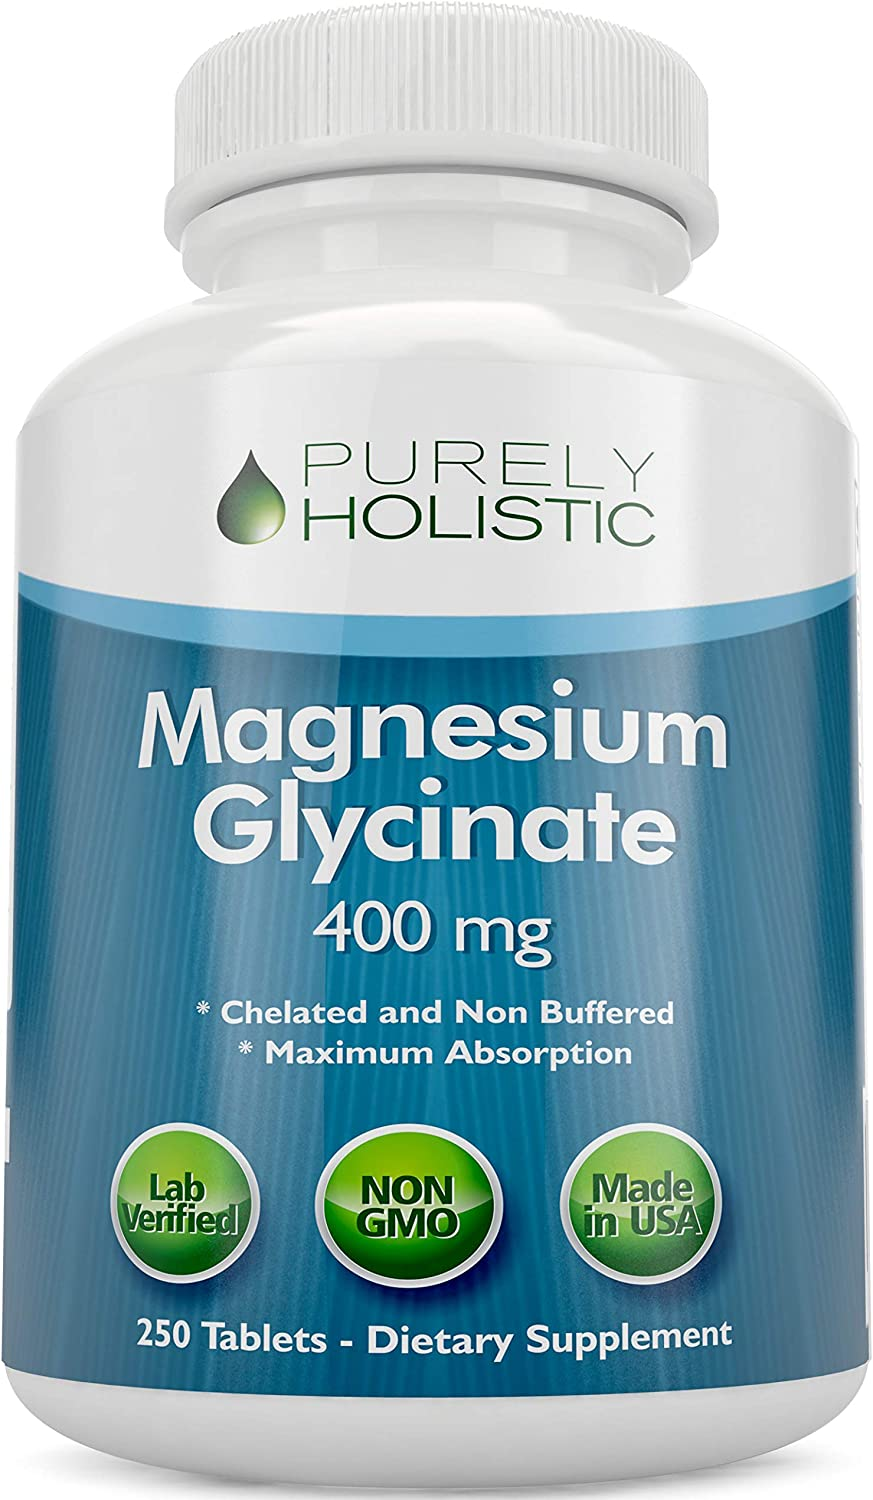 Magnesium Glycinate 400mg Tablets - 100% More 250 Magnesium Tablets (not Capsules), Highly Bioavailable, Chelated & Magnesium - Vegan and Vegetarian - Improved Sleep, Stress Relief & Cramp Defense